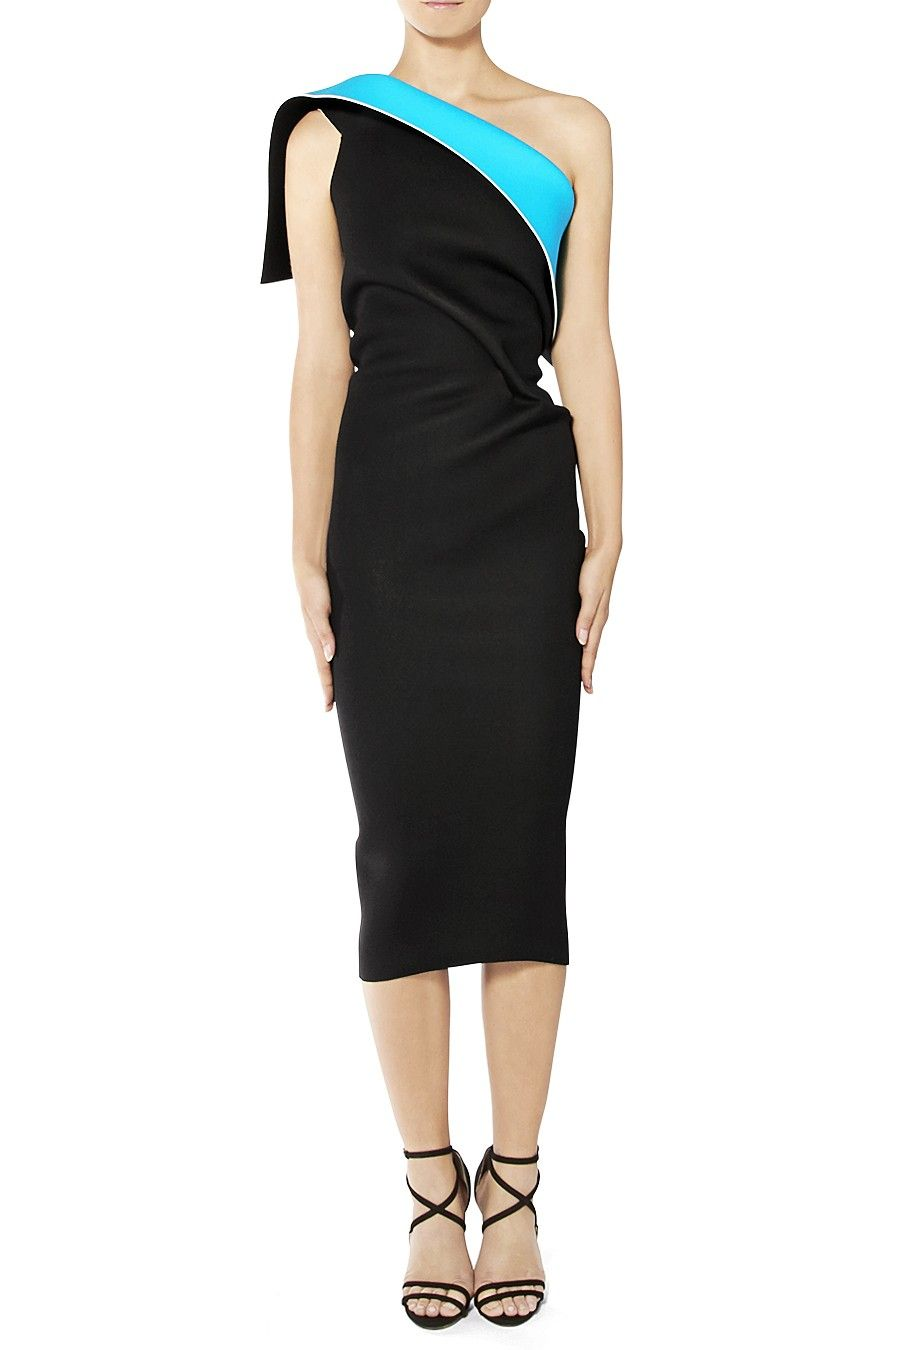 Maticevski Optical Cocktail Dress - Black / Turquoise tonimaticevski ...